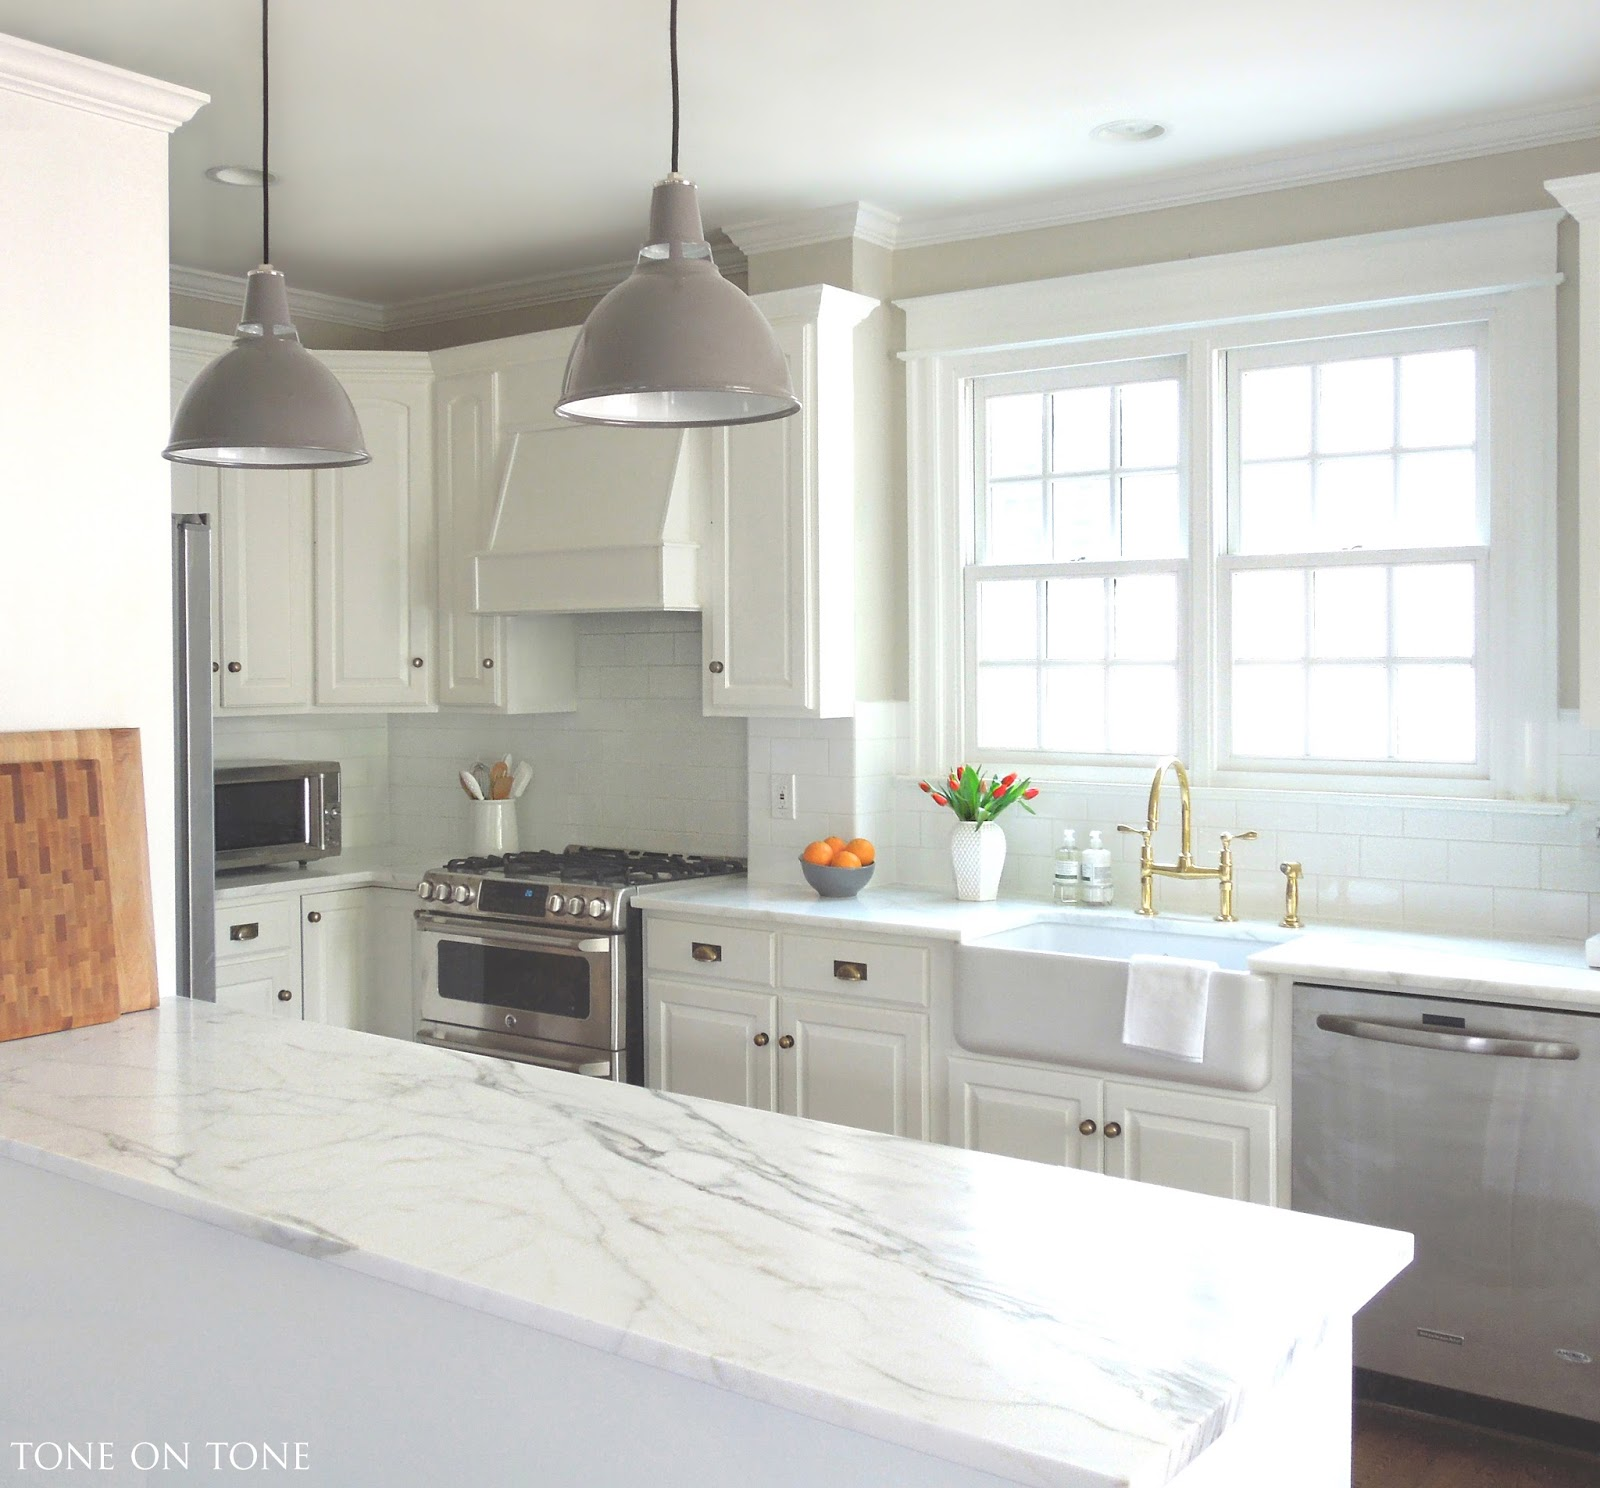 Tone on Tone: A Kitchen Makeover